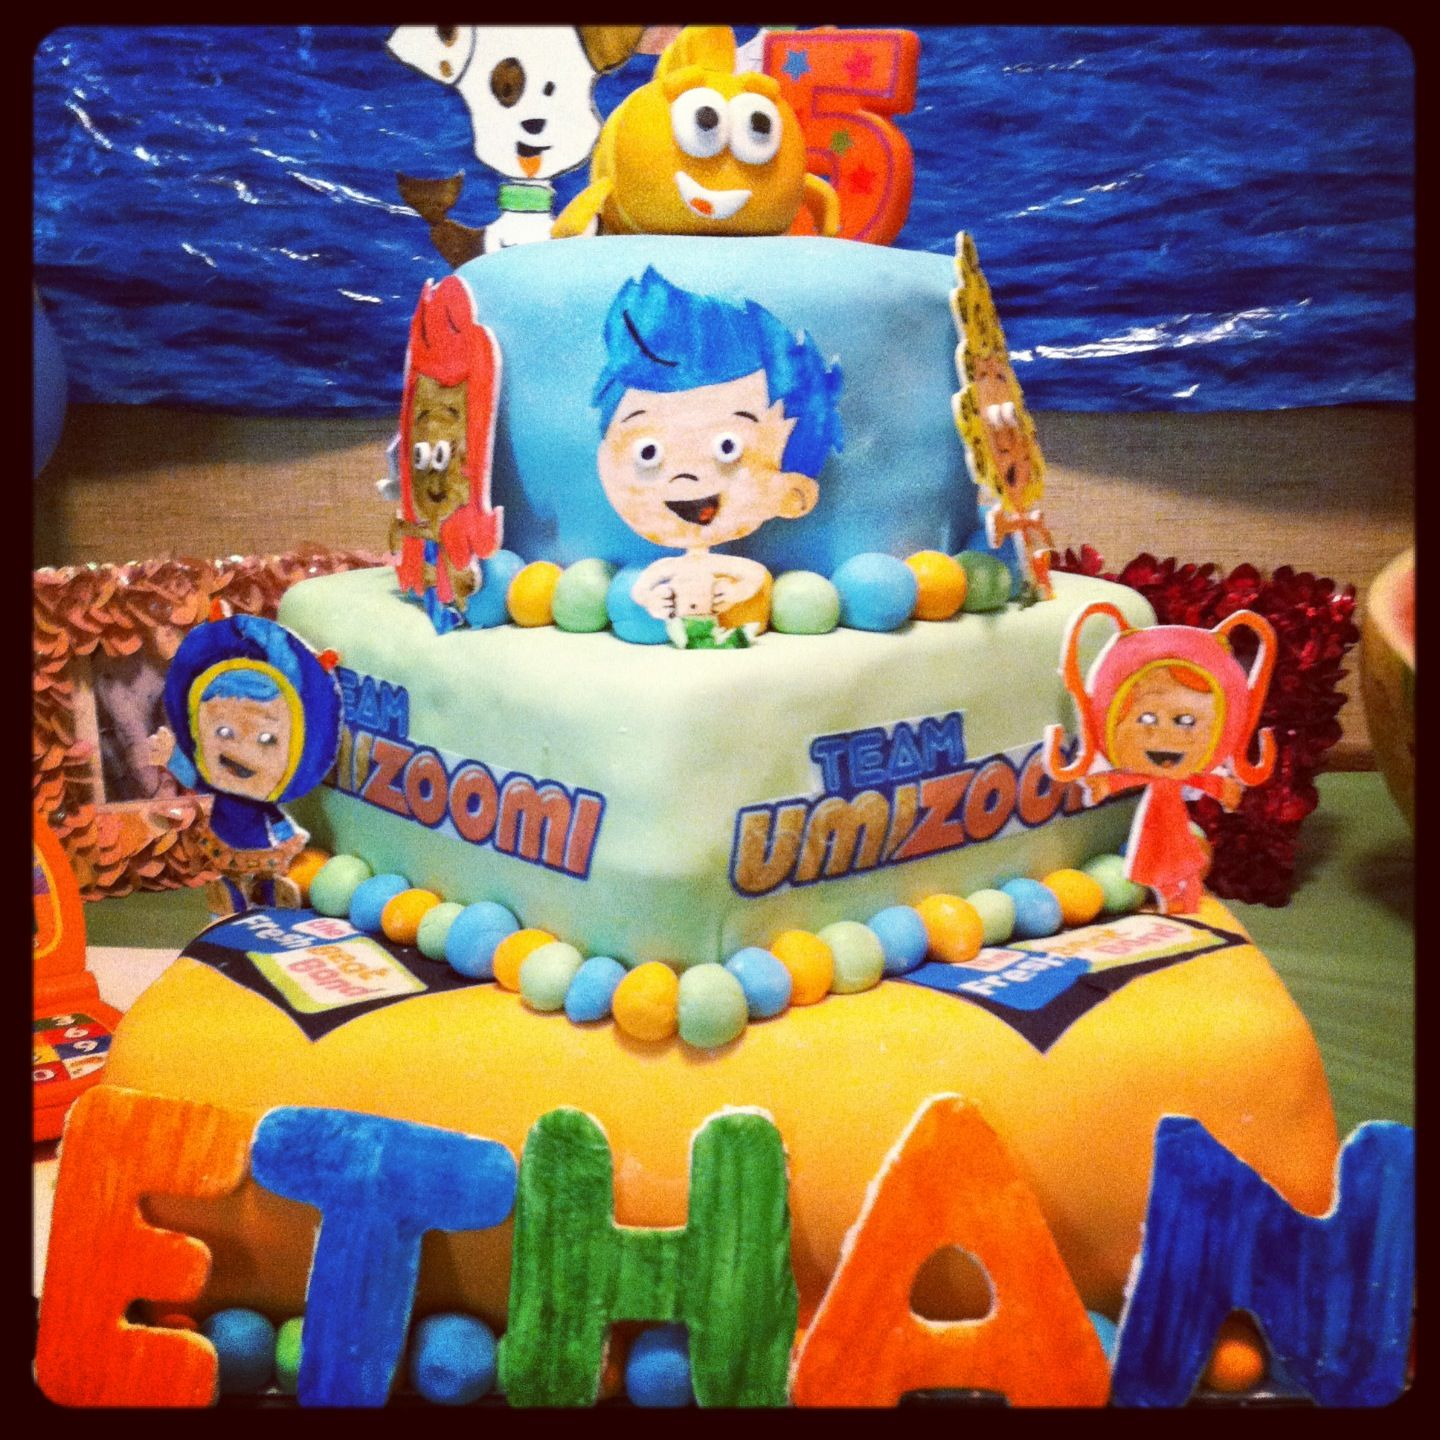 Awe Inspiring Ethans 5Th Bday Cake Nick Jr Themed With Images Cake Funny Birthday Cards Online Alyptdamsfinfo